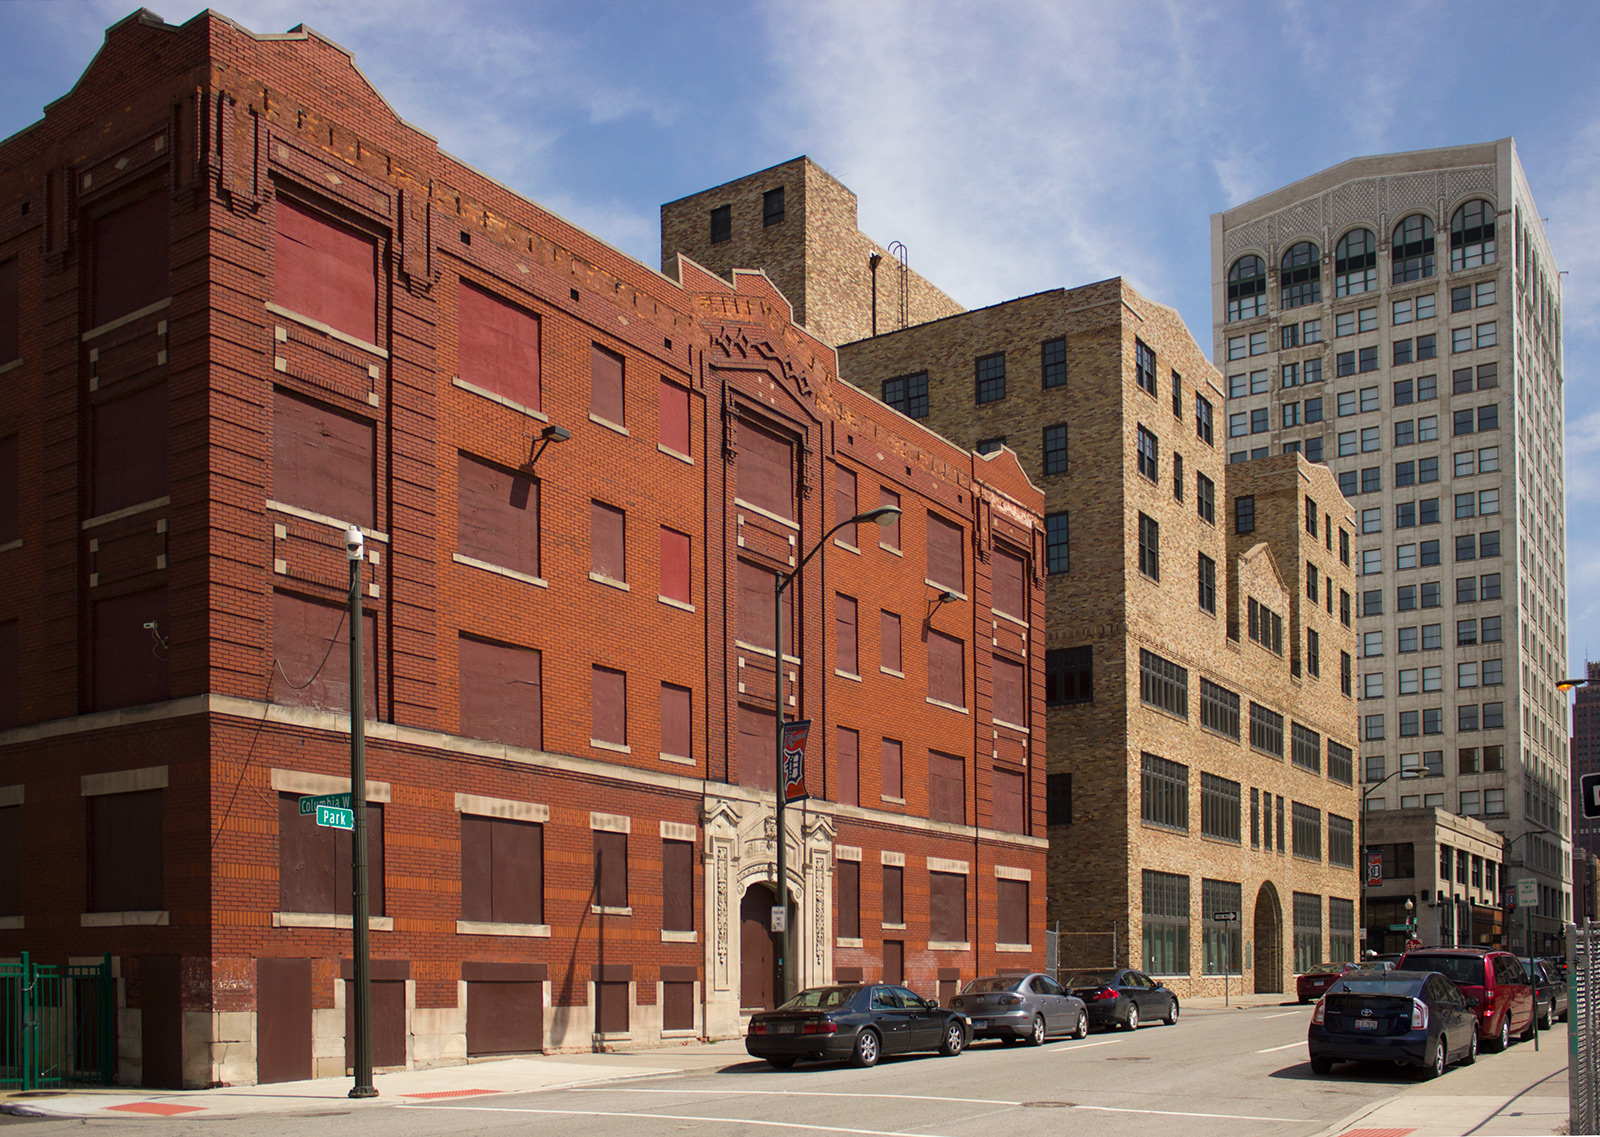 20140106. Detroit's Park Ave. From left to right: Blenheim Apts (1909), Cliff Bell's Club (1935), Women's City Club (1922), Kales Bldg (1914).